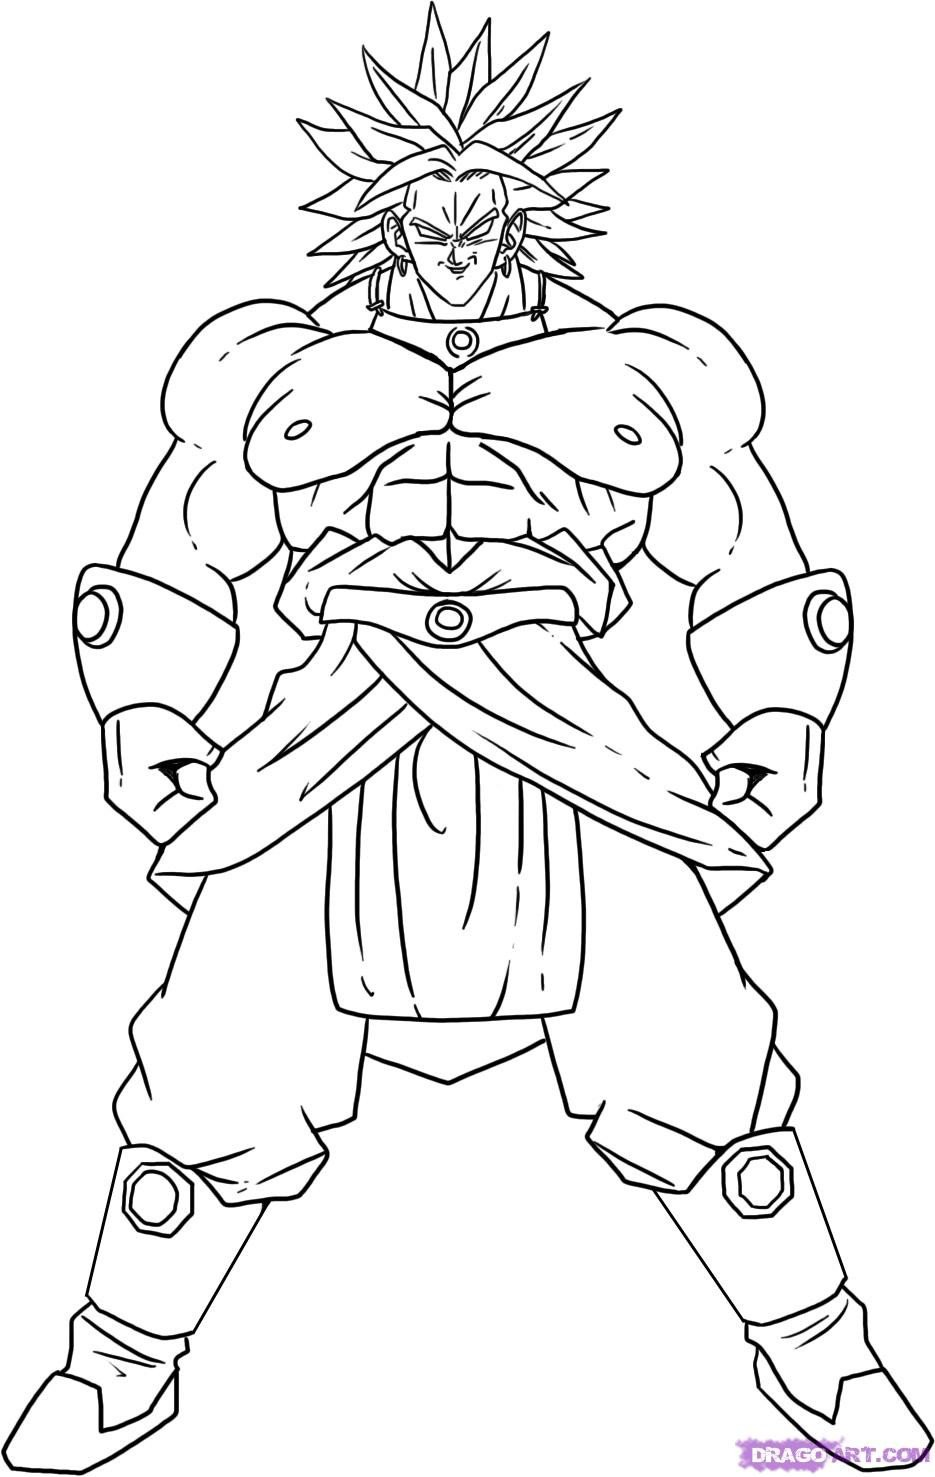 Free Printable Dragon Ball Z Coloring Pages For Kids And